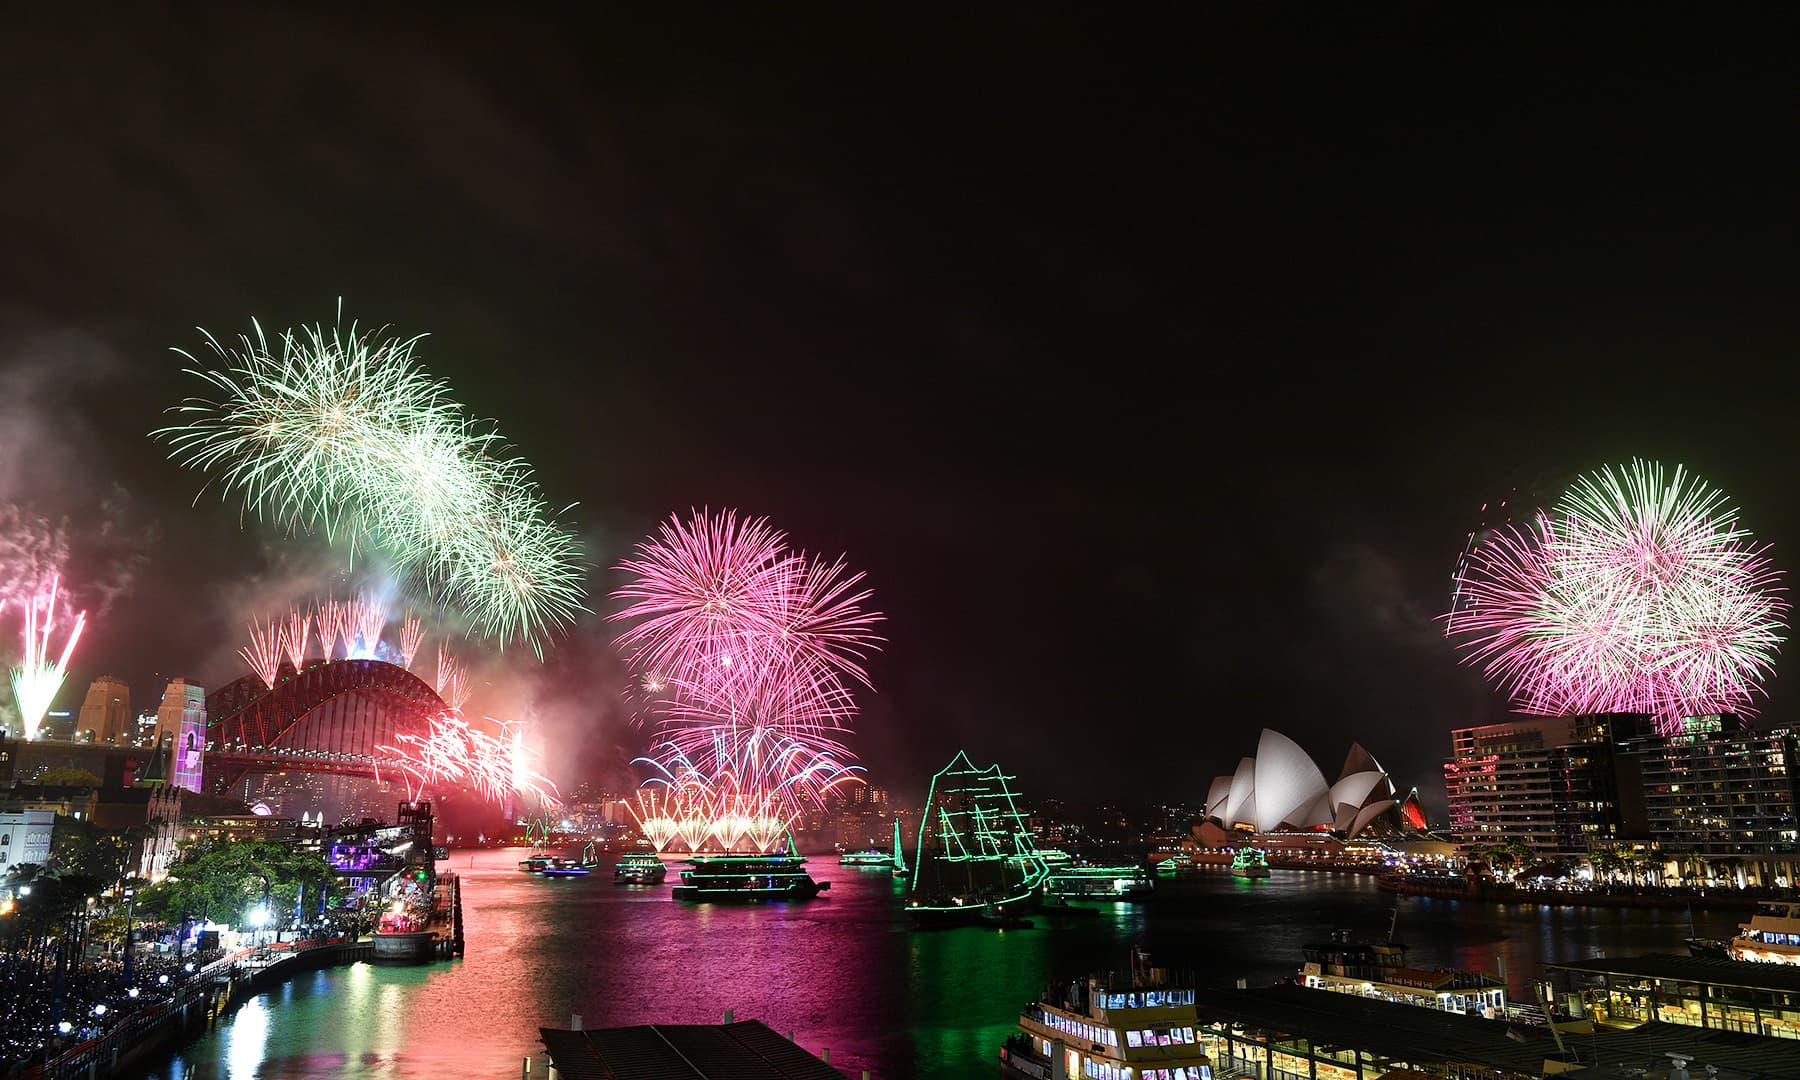 Fireworks explode to welcome in the New Year over the Sydney Harbour Bridge and the Sydney Opera House, as seen from Cahill Expressway during New Year's Eve celebrations in Sydney, Australia, January 1, 2020. — Reuters